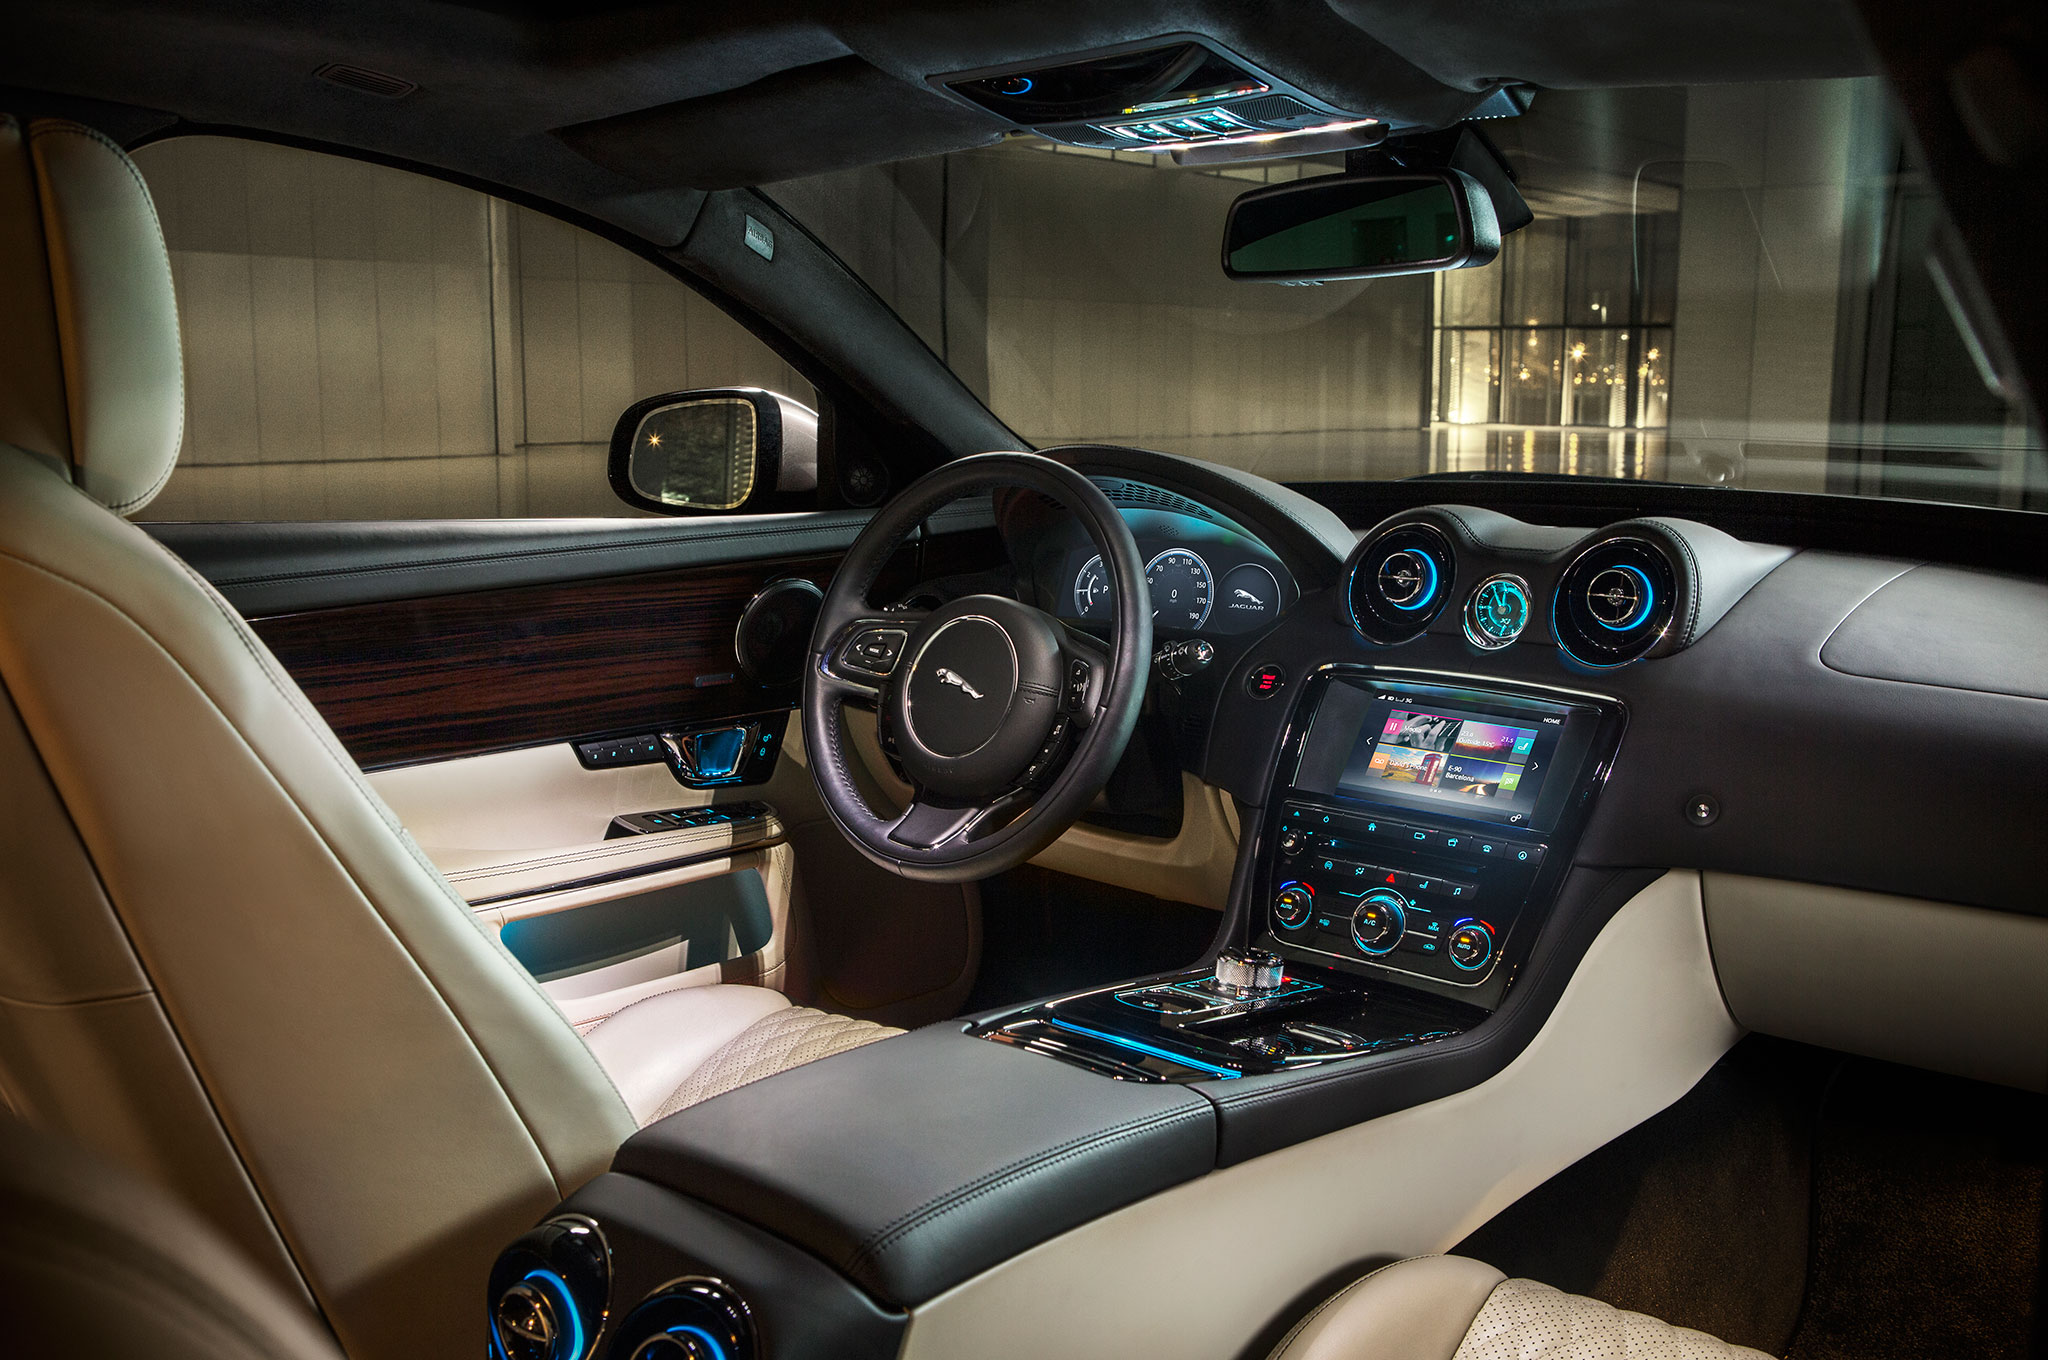 xj review overview car jaguar interior xjl and price models exterior